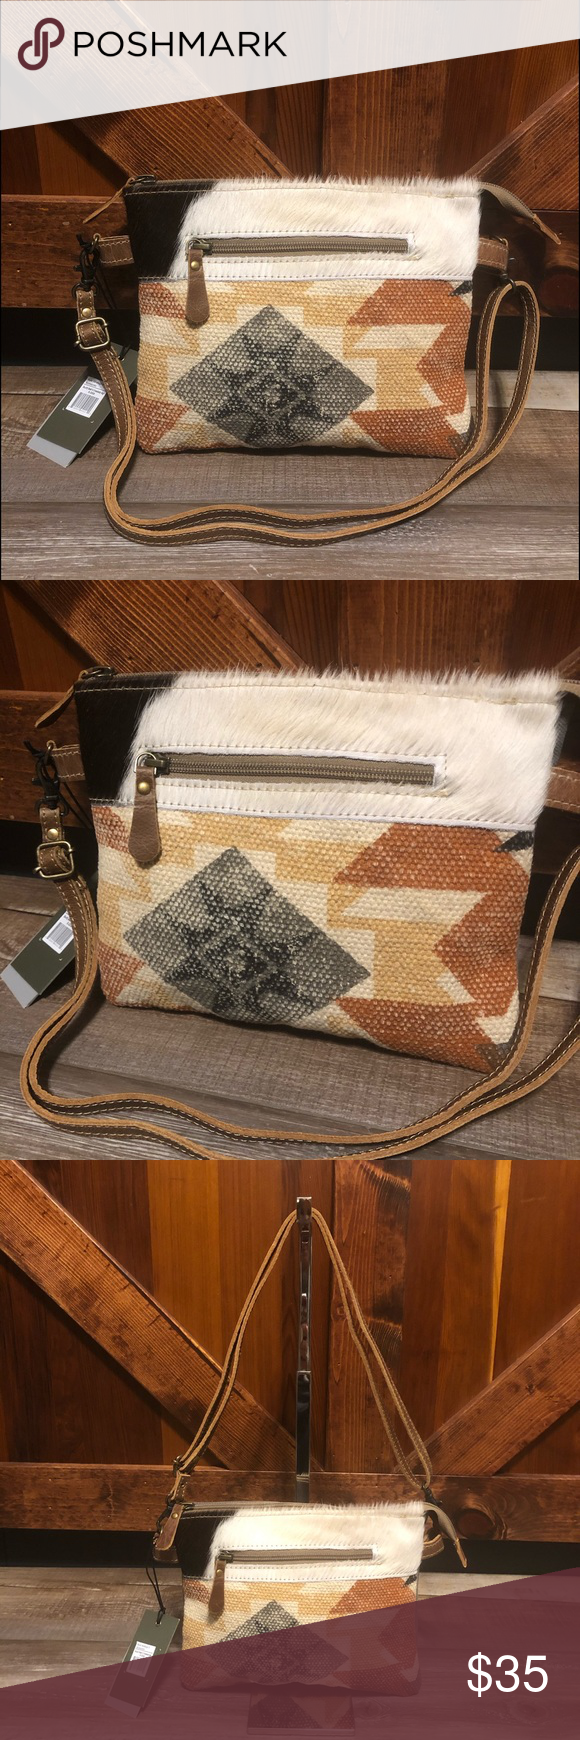 Myra Bag Smurfy Small Crossbody Upcycled In 2020 Bags Small Crossbody Fashion Bags Shop for handbags and bags in india buy latest range of handbags and bags at myntra free shipping cod easy returns and exchanges. pinterest